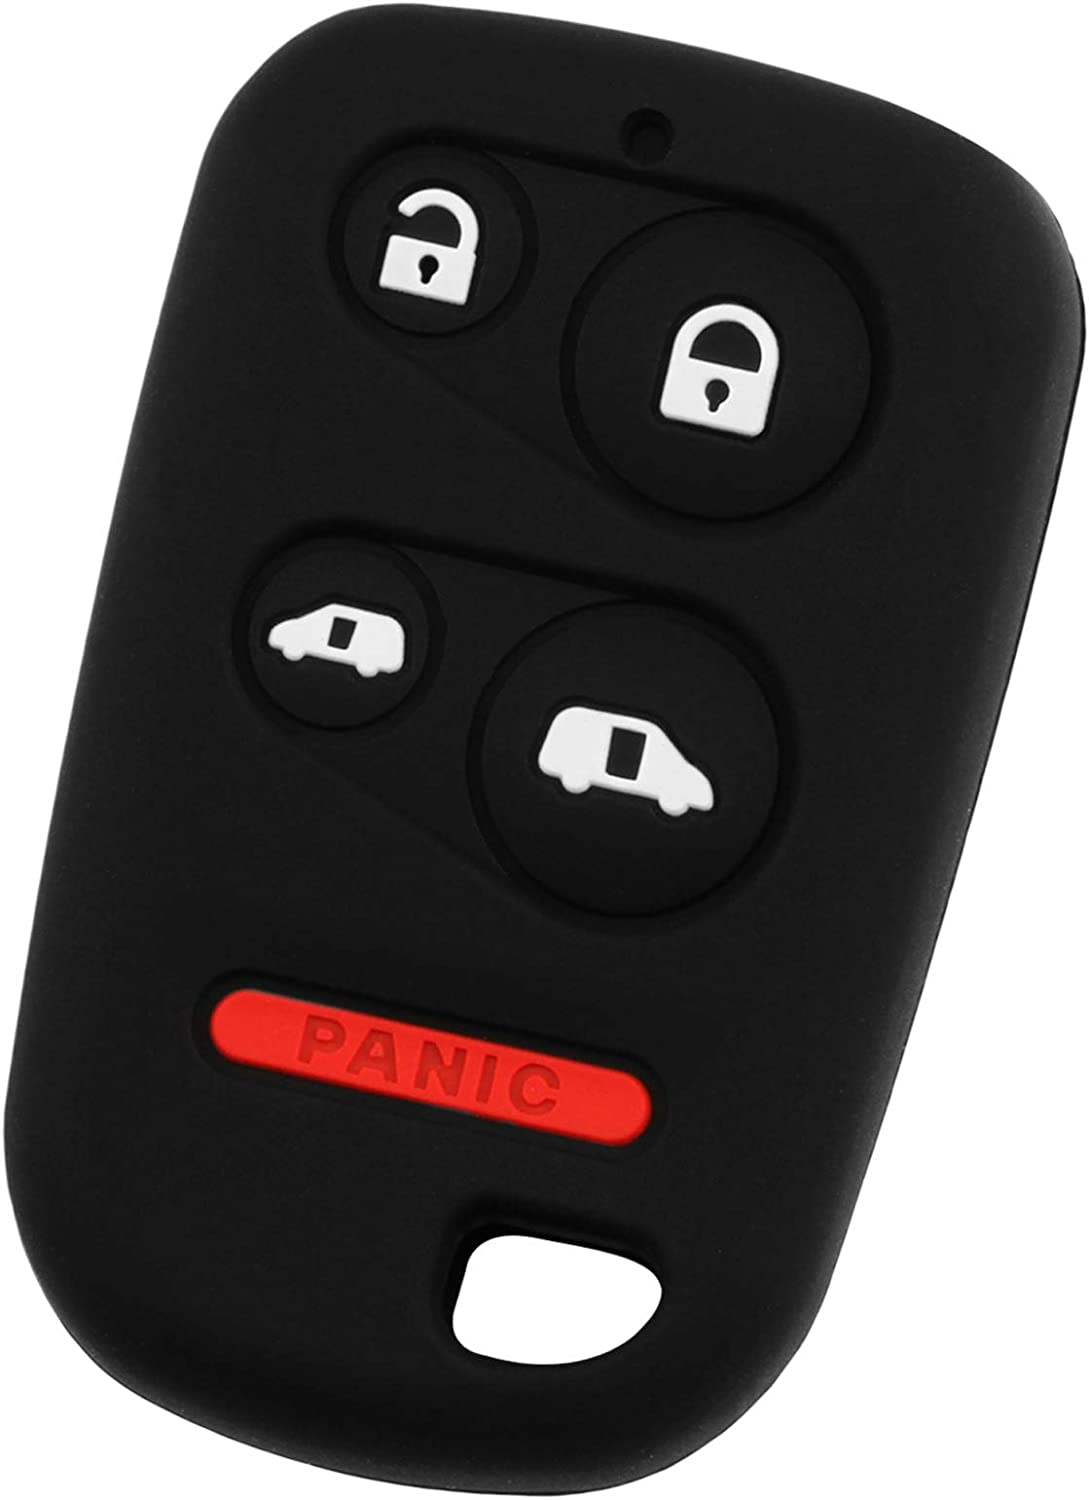 KeyGuardz Keyless Entry Remote Car Key Sof Fob Cheap mail order specialty store Max 68% OFF Outer Shell Cover